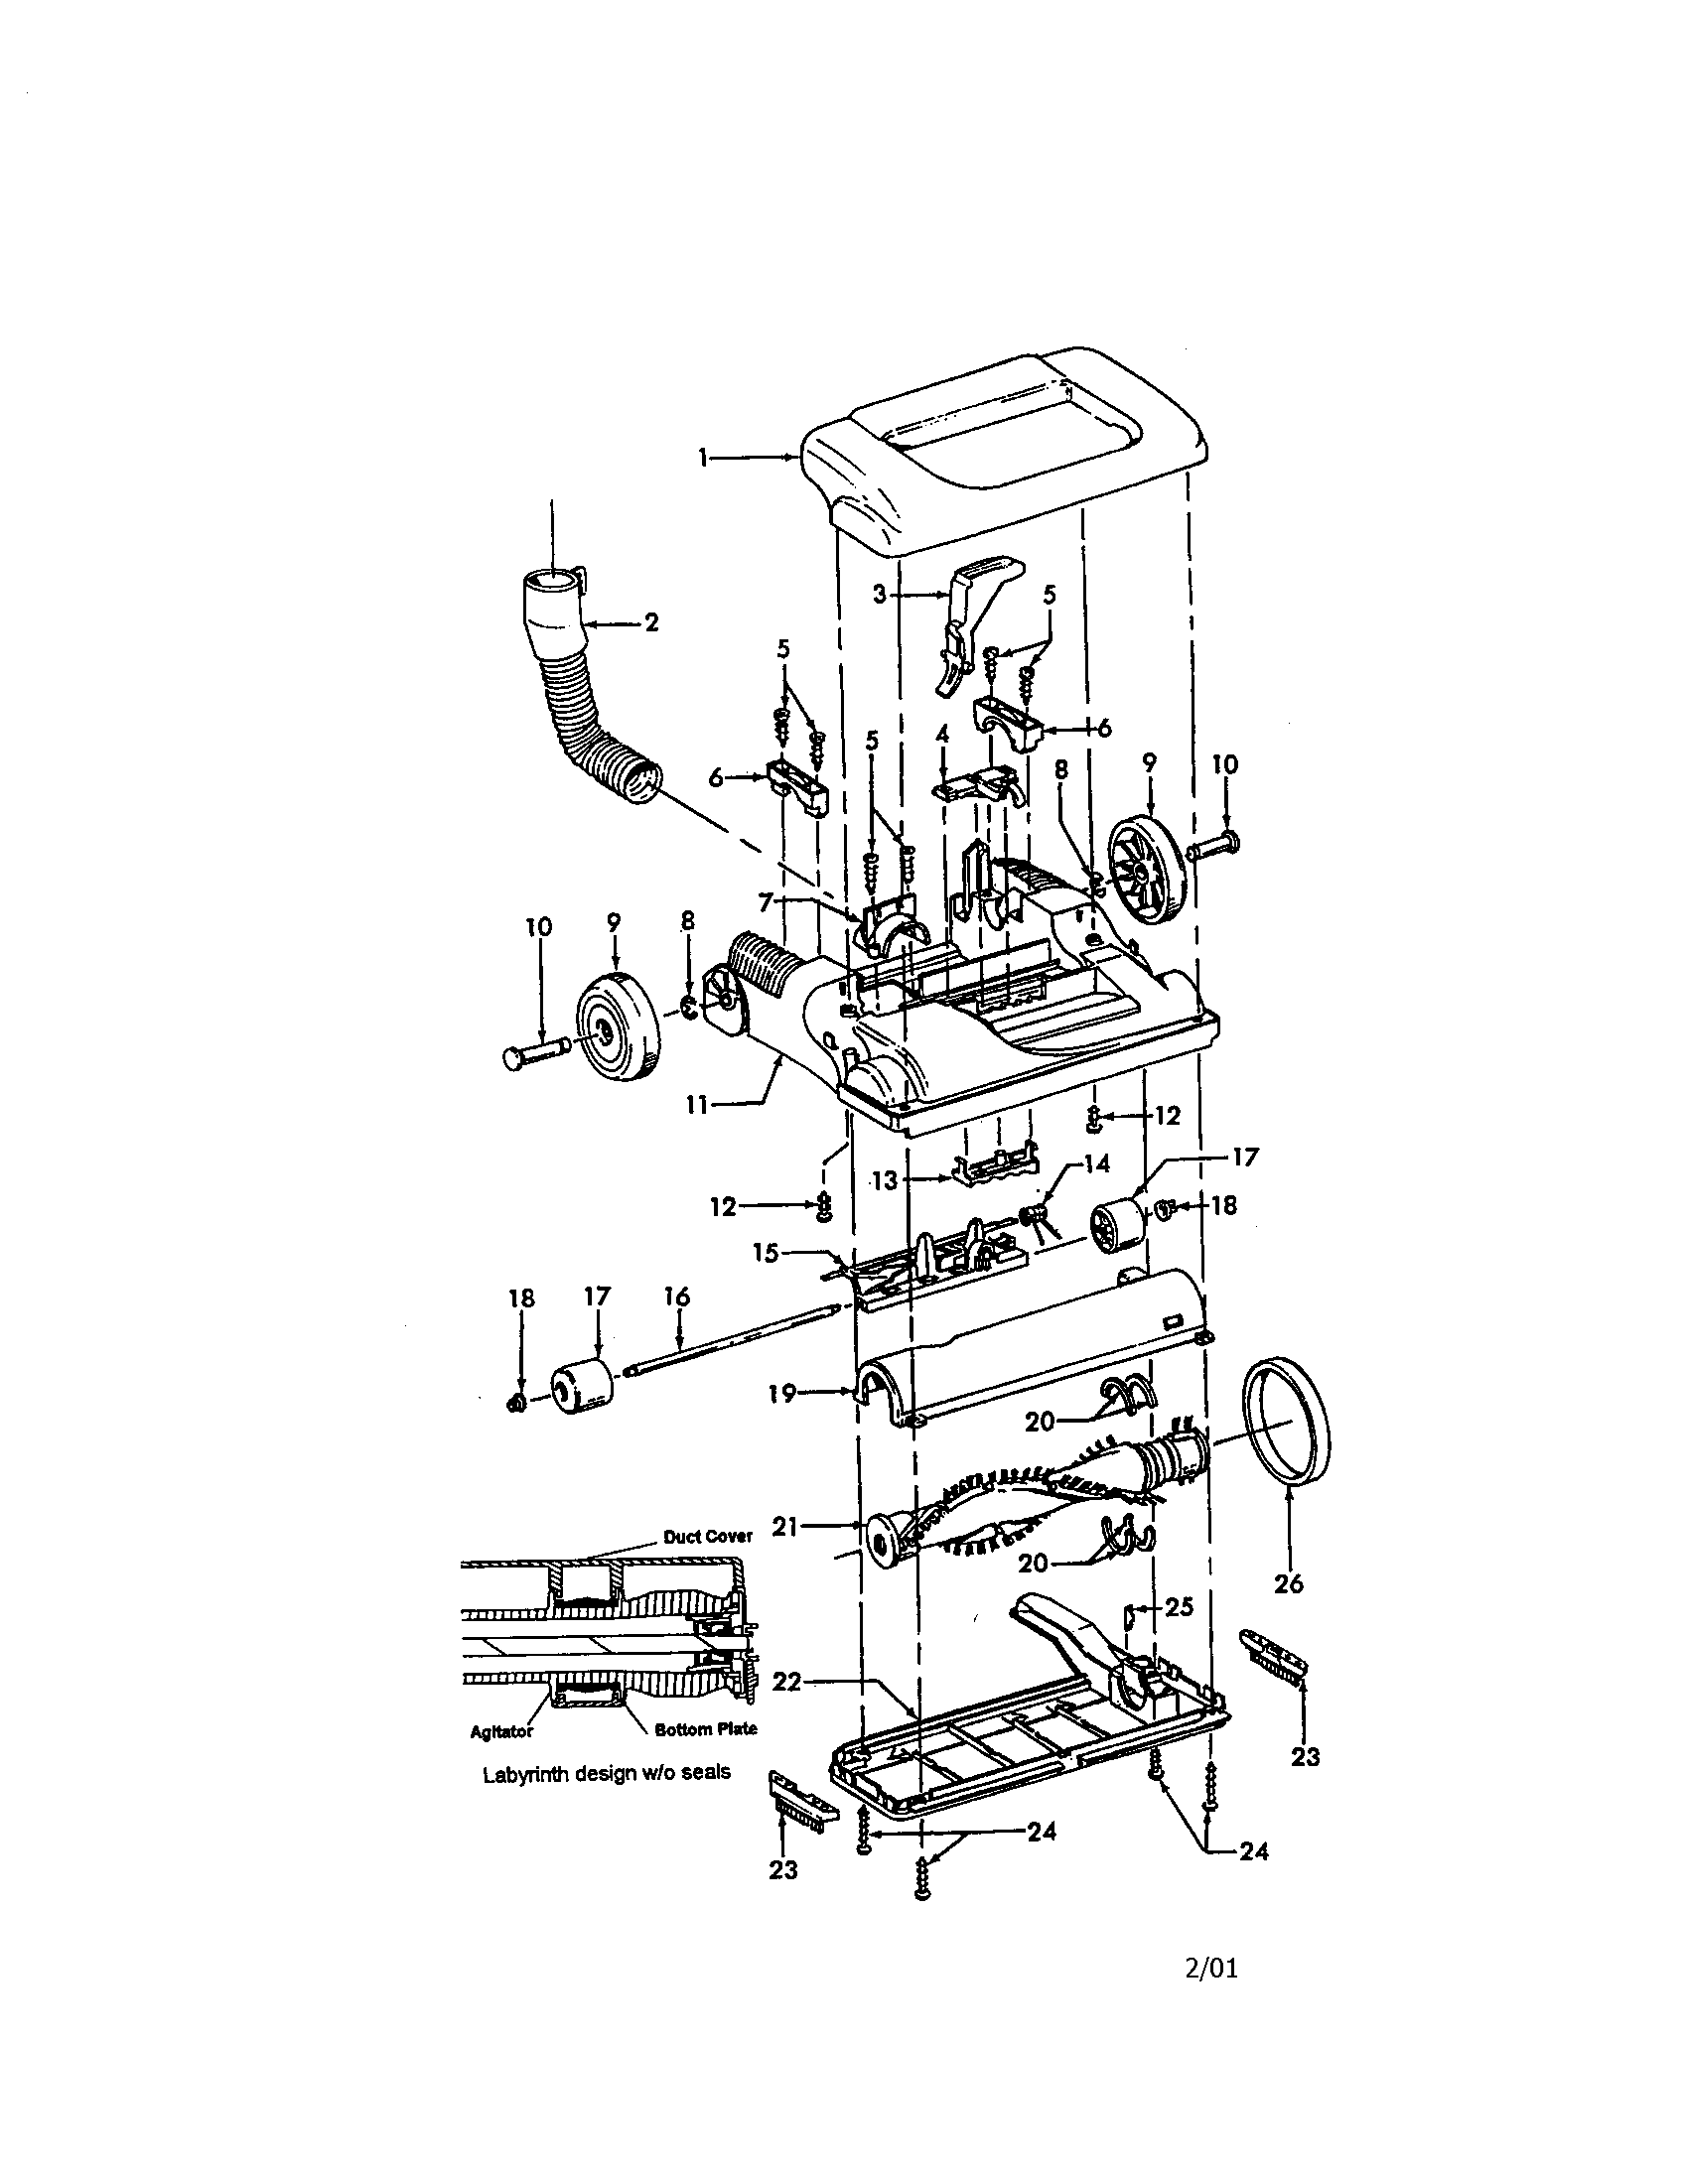 hight resolution of hoover windtunnel upright parts model u5443900 sears hoover bagless vacuum hoover vacuum cleaner wiring diagram